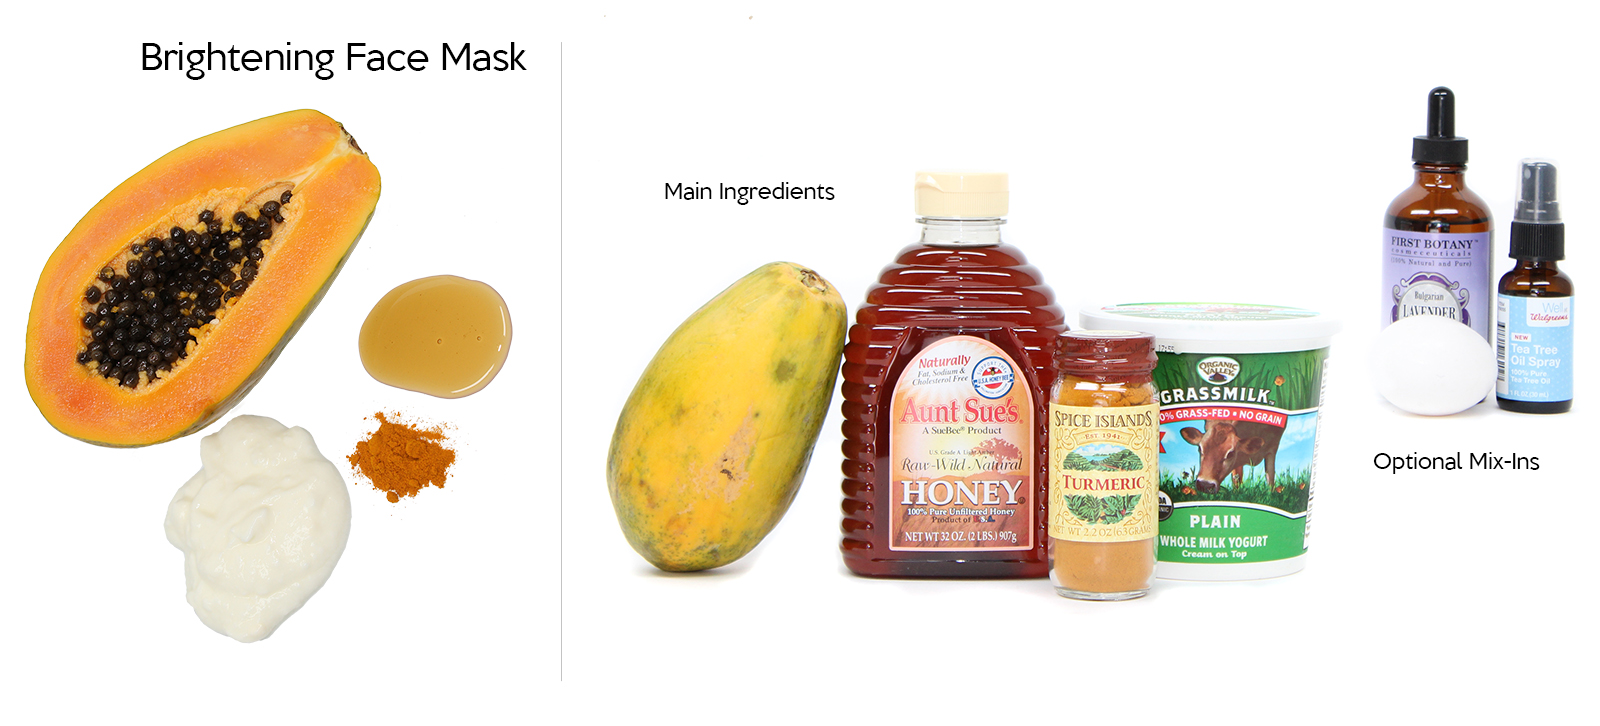 5 amazing diy face masks and natural skin care remedies liveglam honey yogurt papaya turmeric optional mix ins lavender essential oil 2 4 drops tea tree oil 1 2 drops egg white for toning solutioingenieria